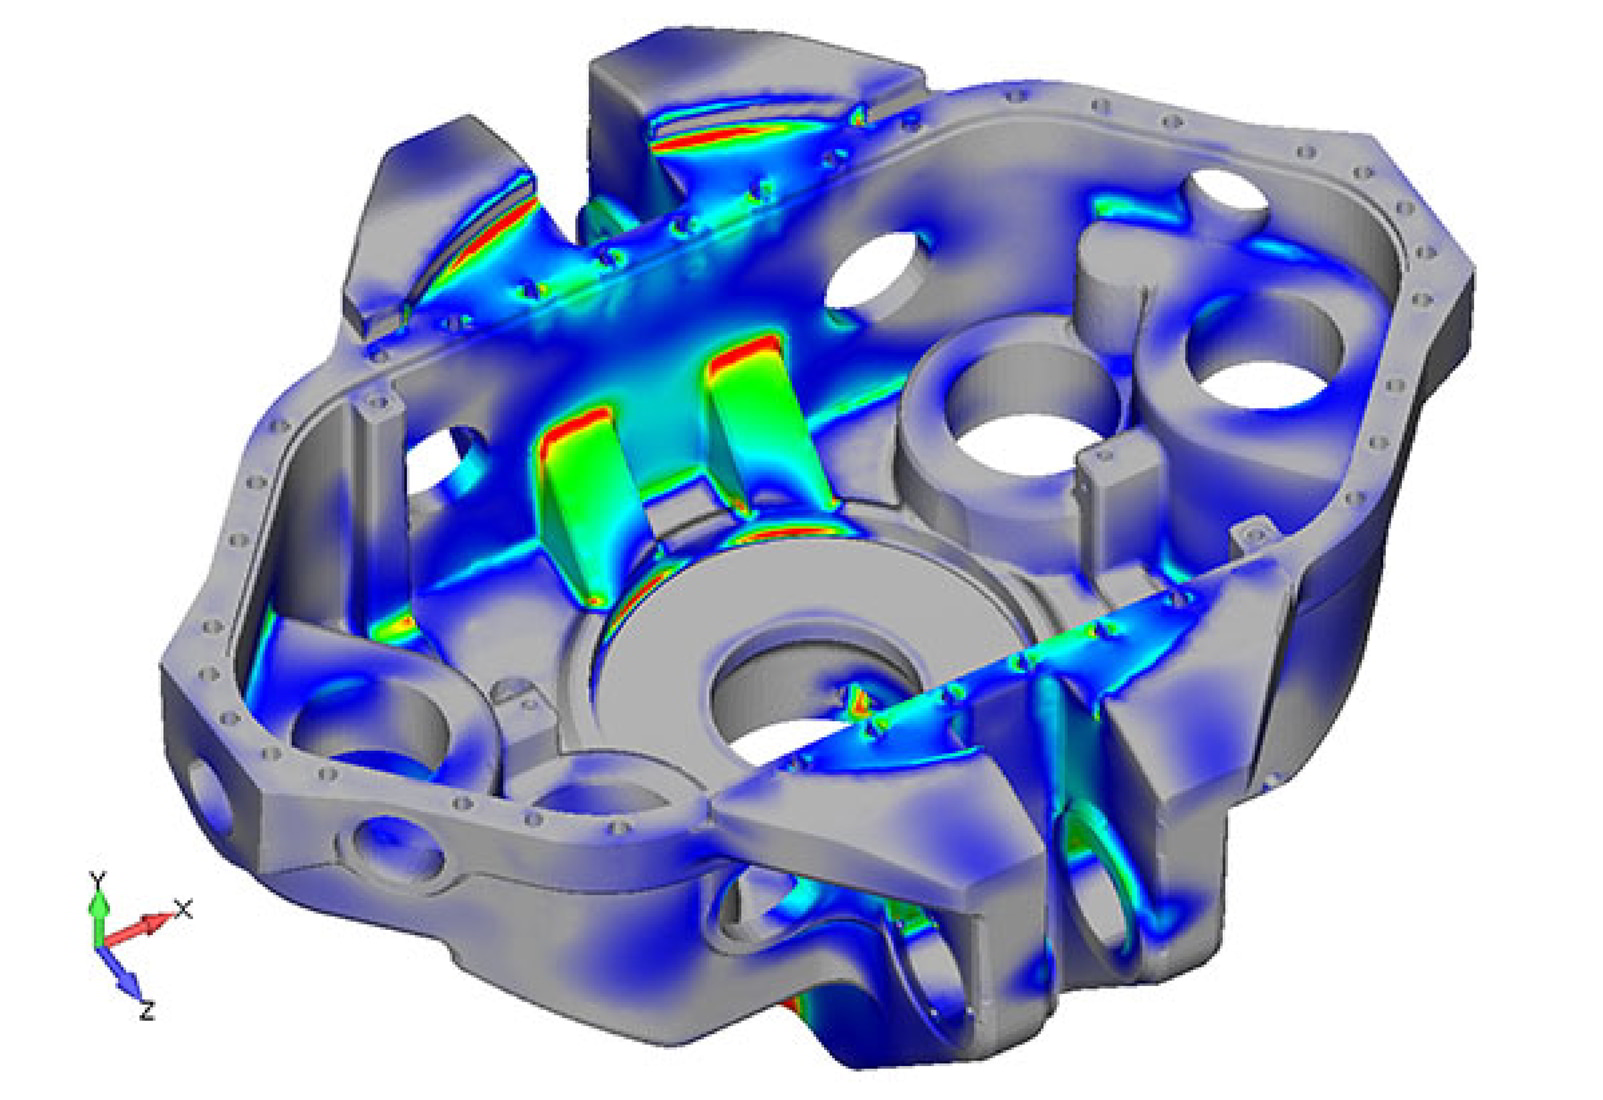 Stress results for FEA model of 1,000 short ton top drive as analyzed by Predictive Engineering